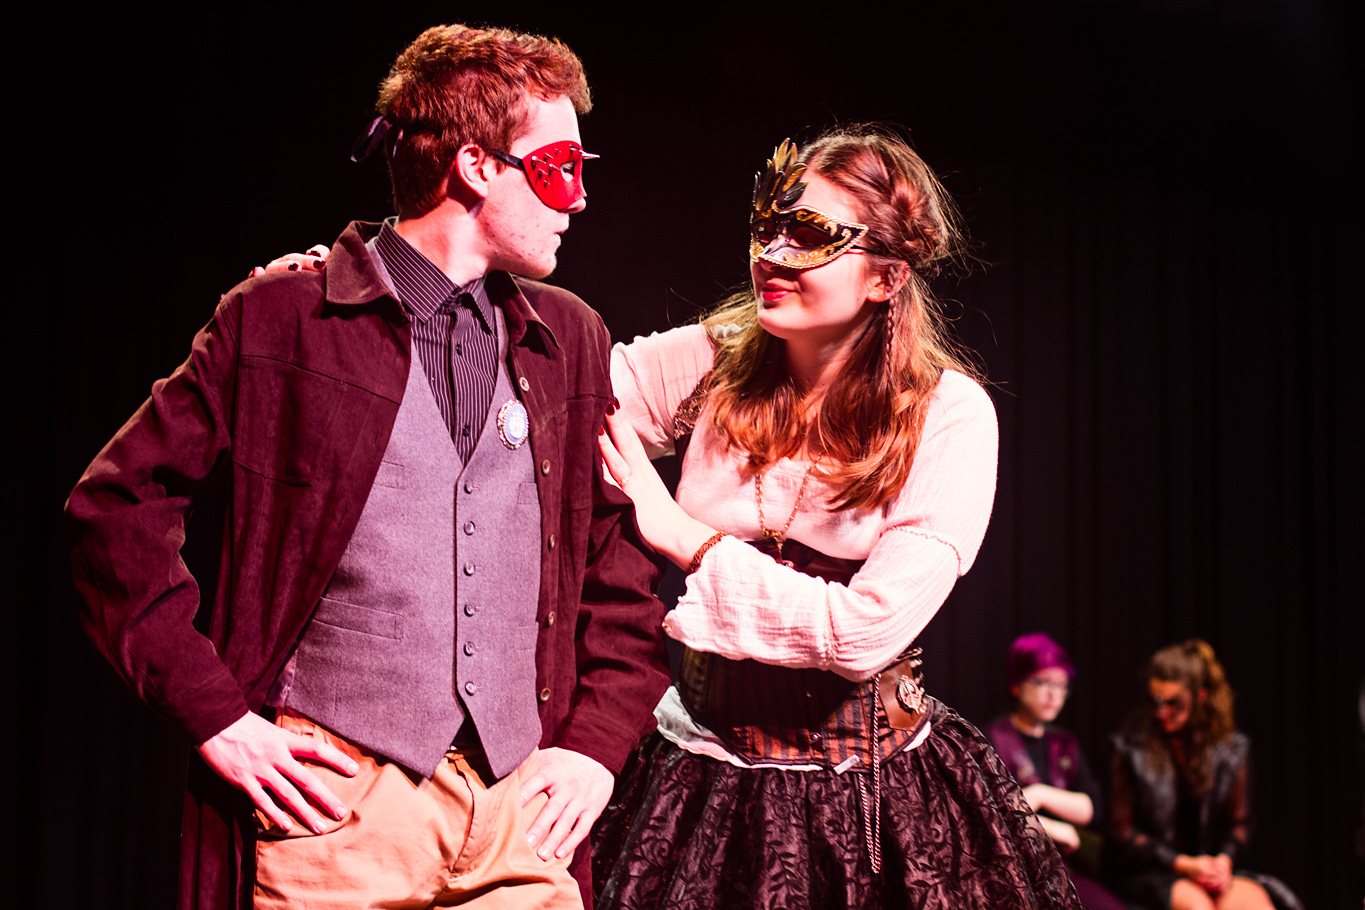 Benedick & Beatrice (Much Ado About Nothing)